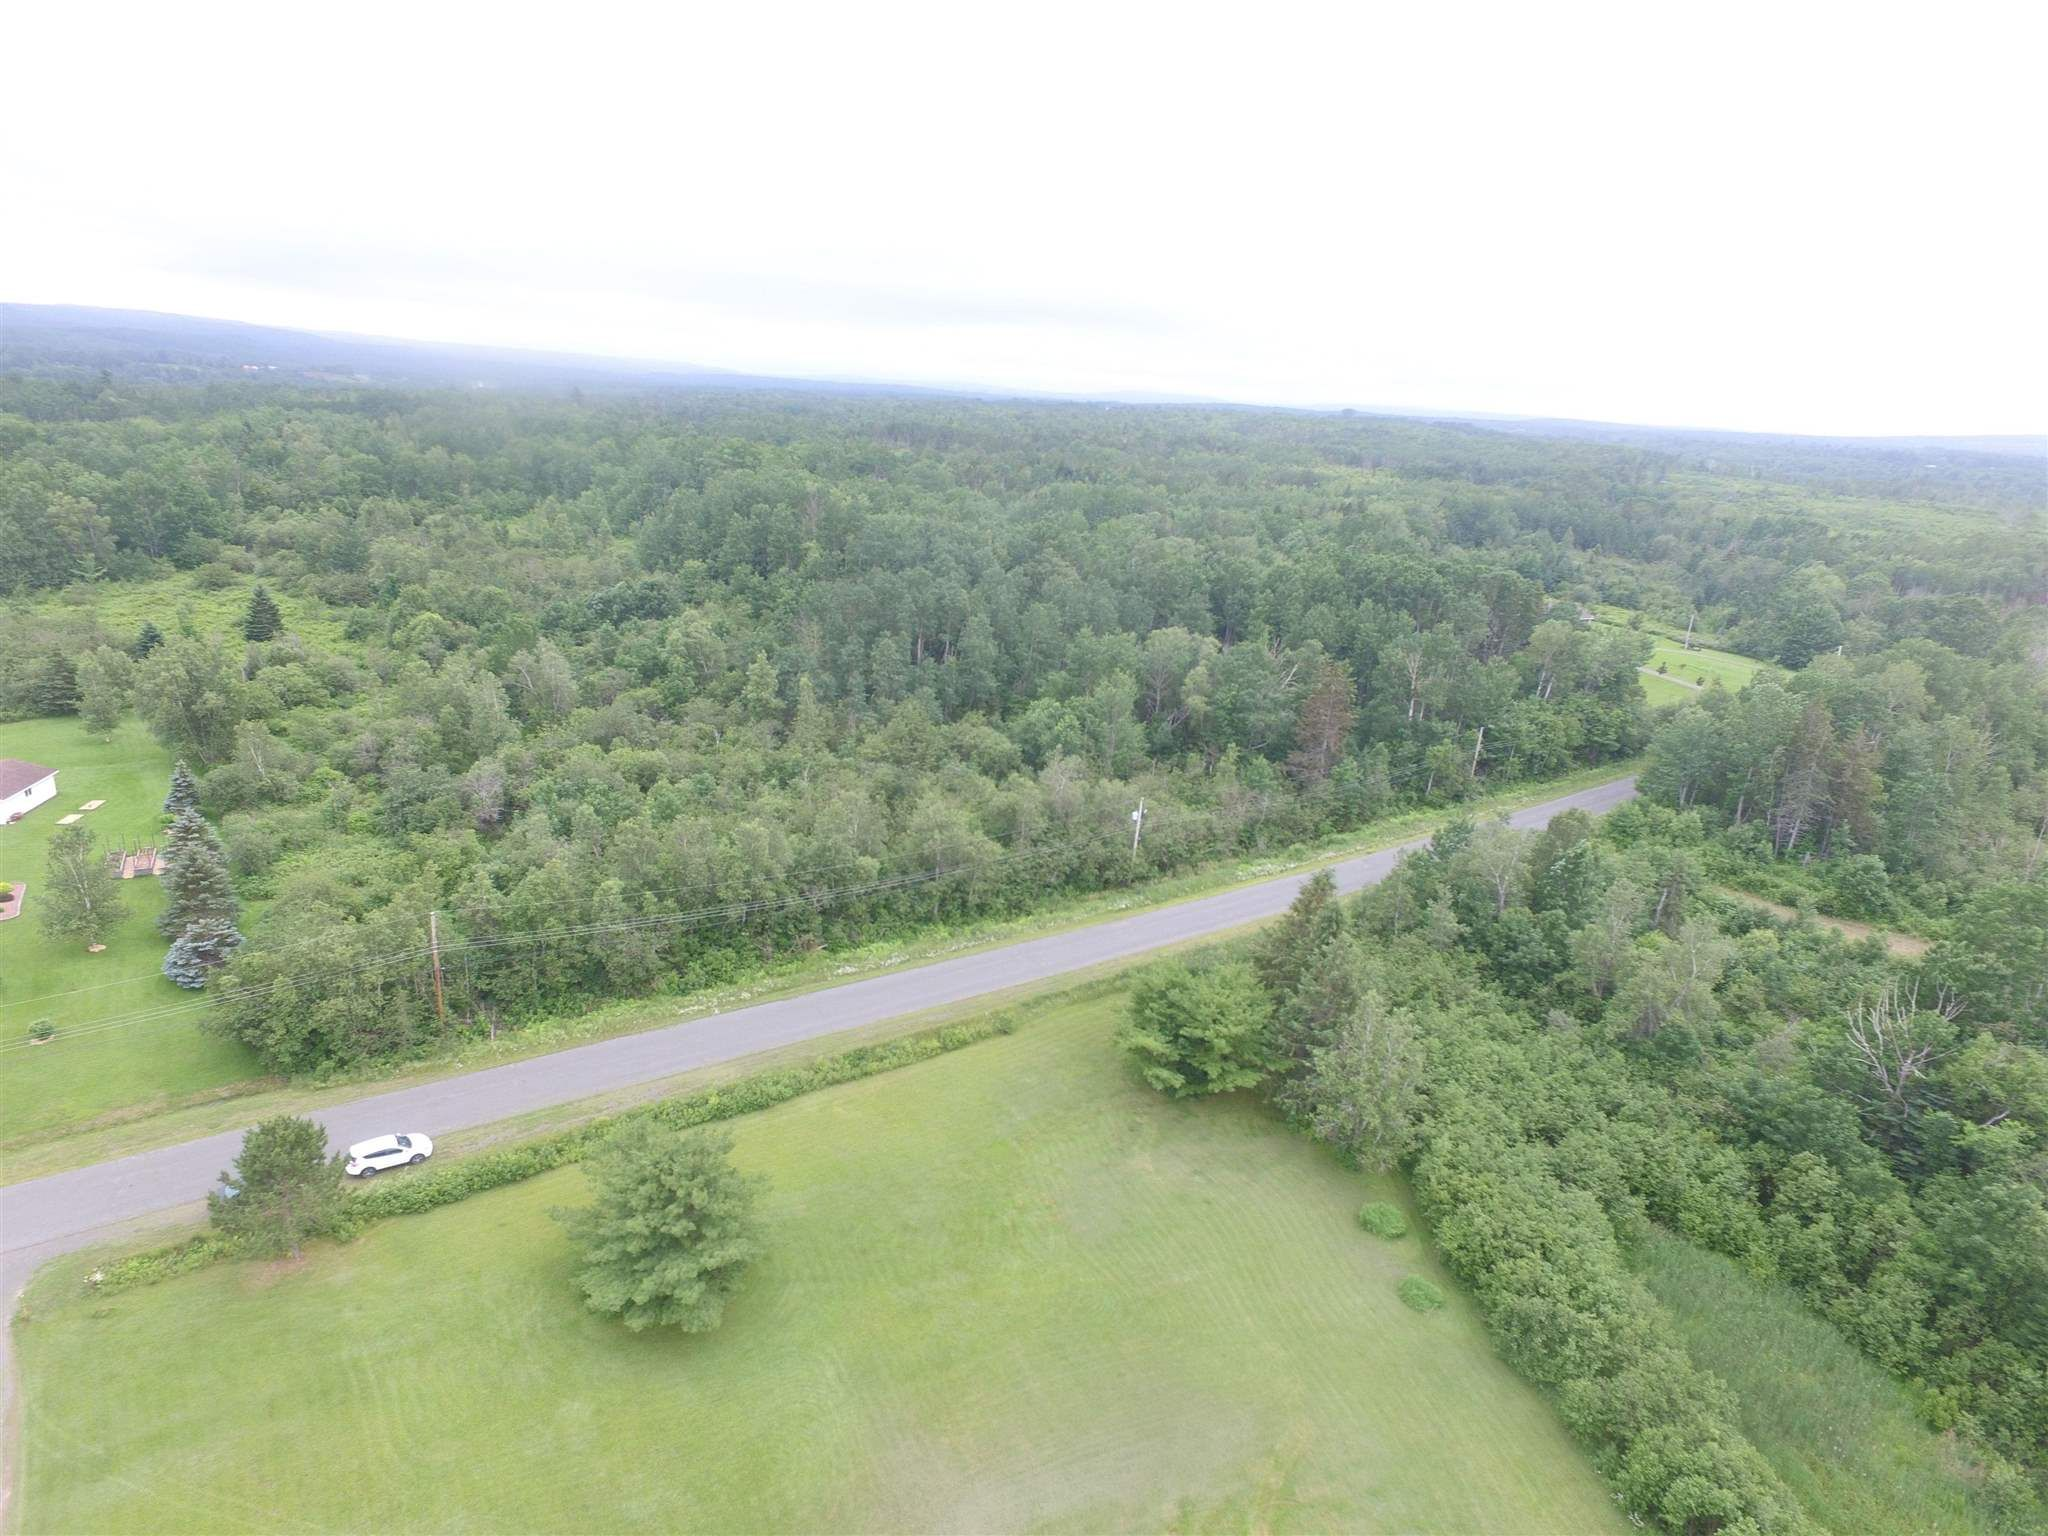 Main Photo: Lot 12 Quarry Brook Road in Durham: 108-Rural Pictou County Vacant Land for sale (Northern Region)  : MLS®# 202117807